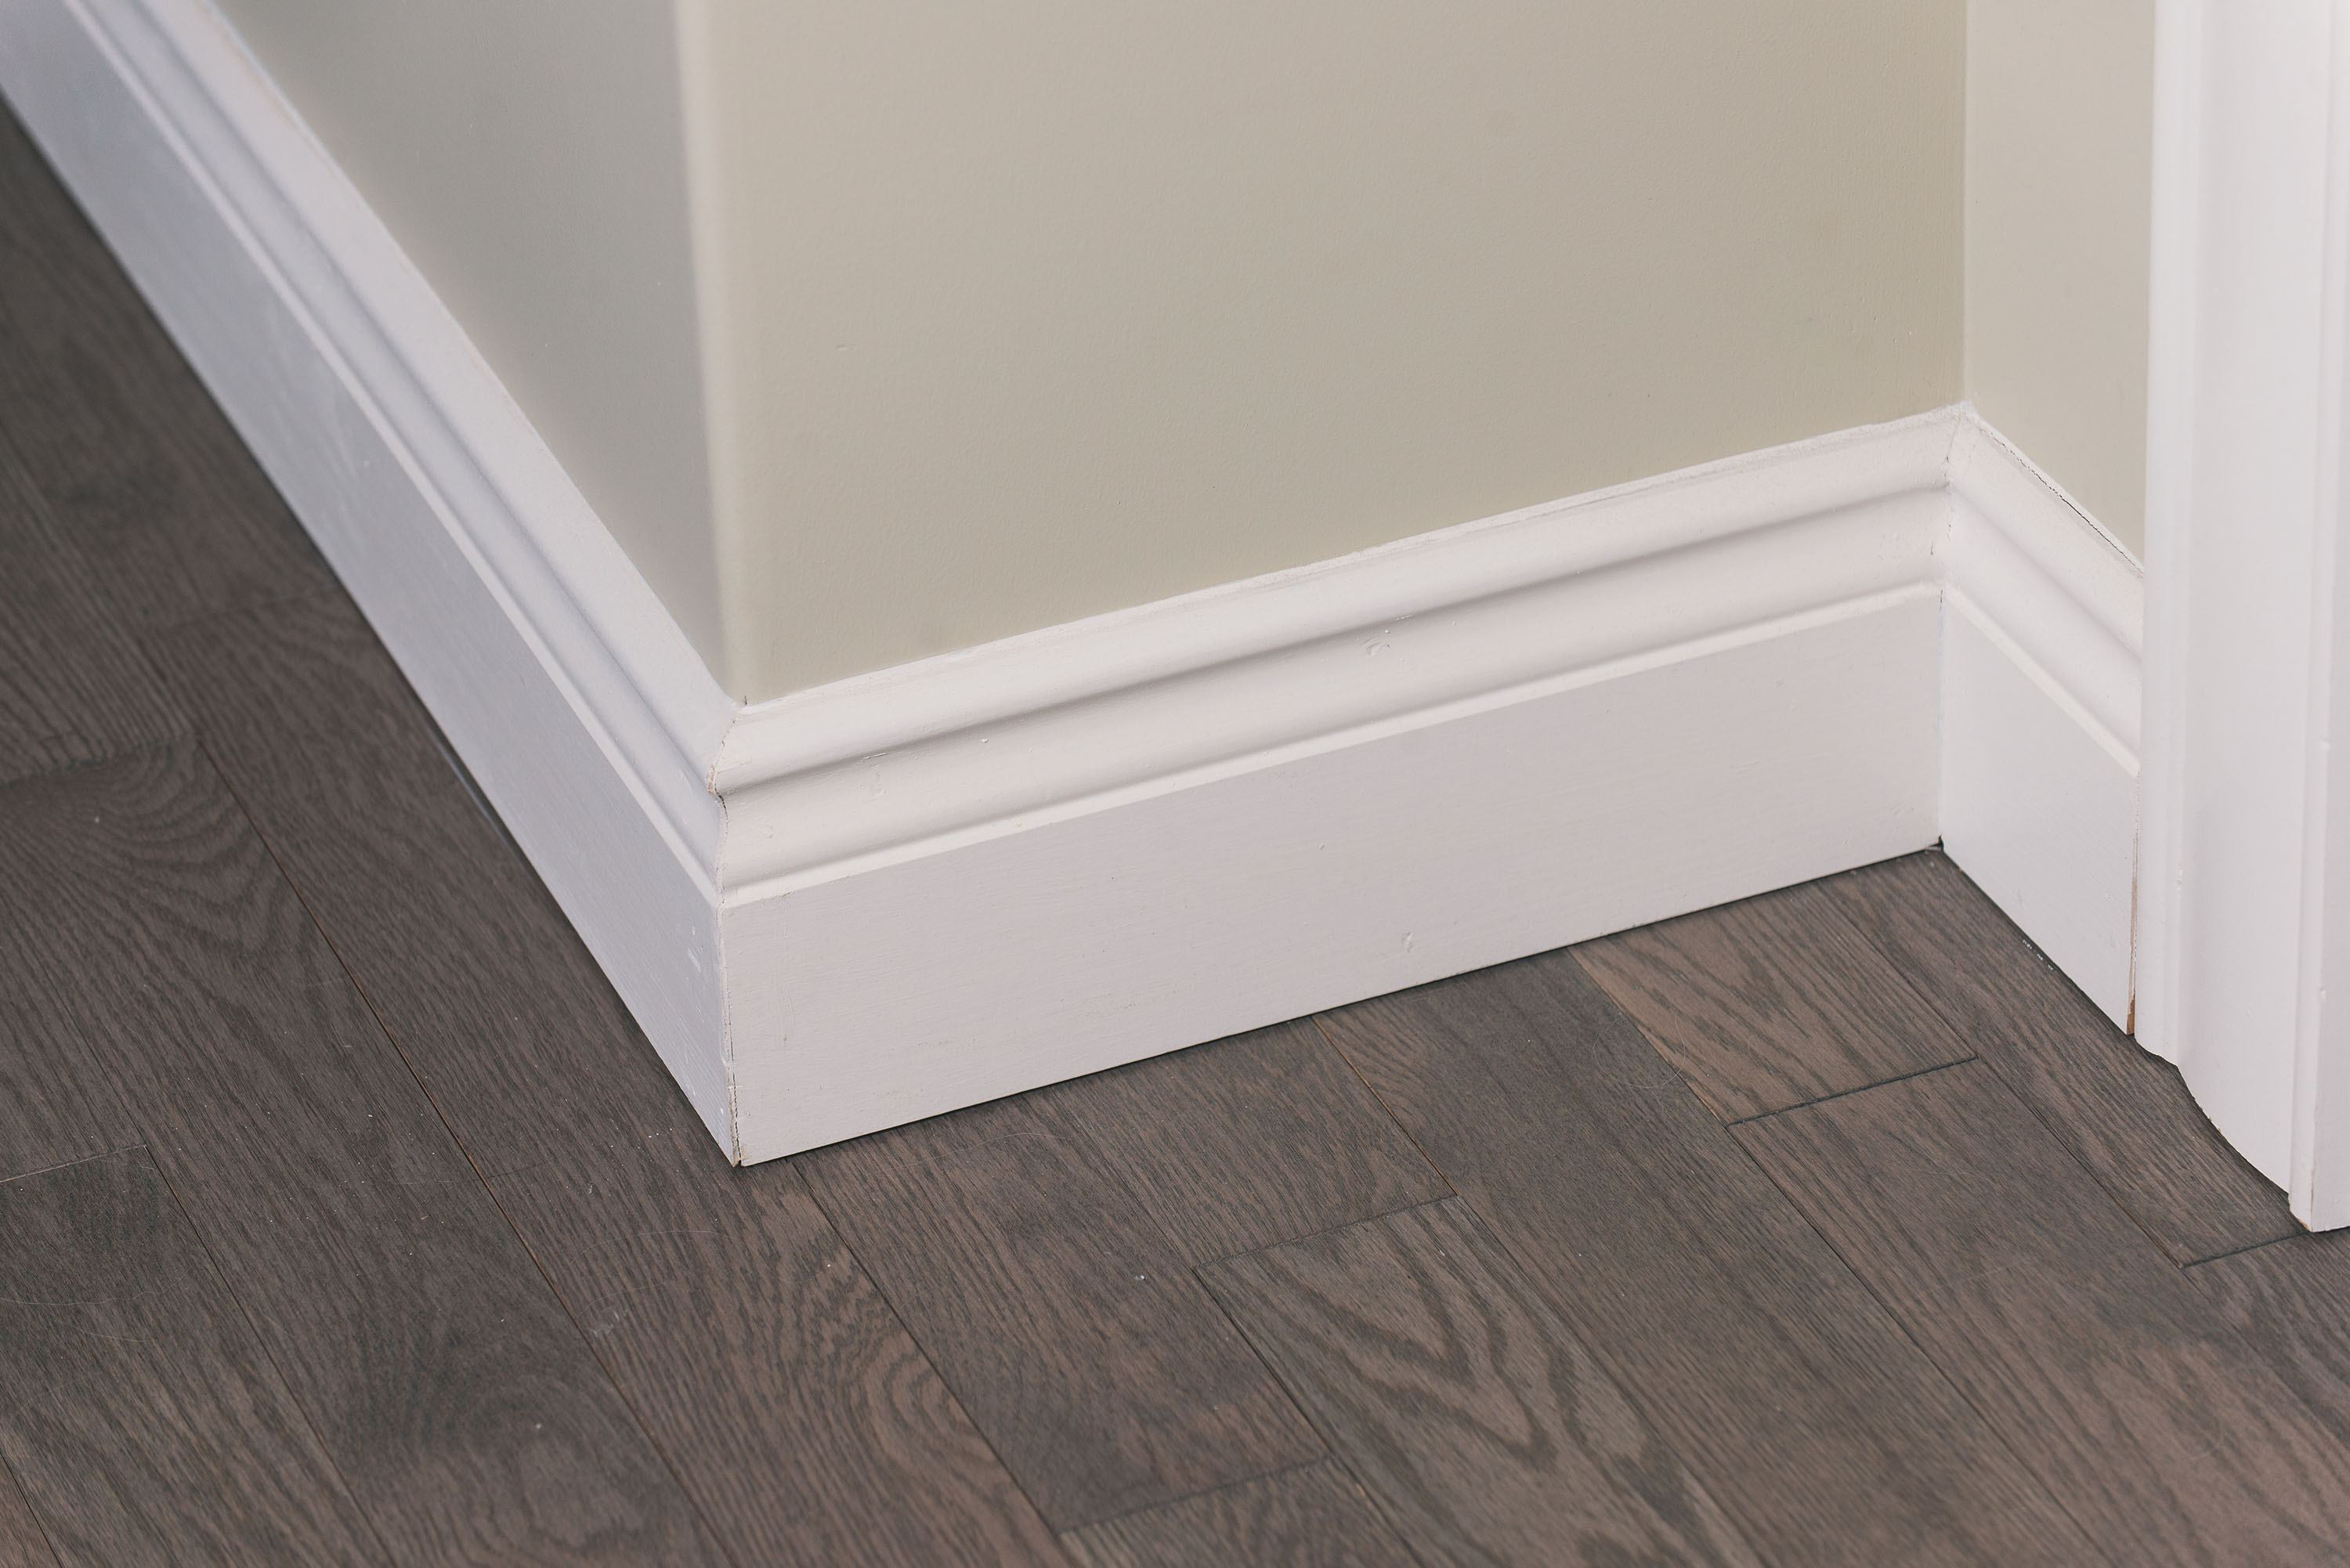 paint installing com molding in charming x the flooring wooden to mtmbilab master floor with how and baseboard living bedroom for room